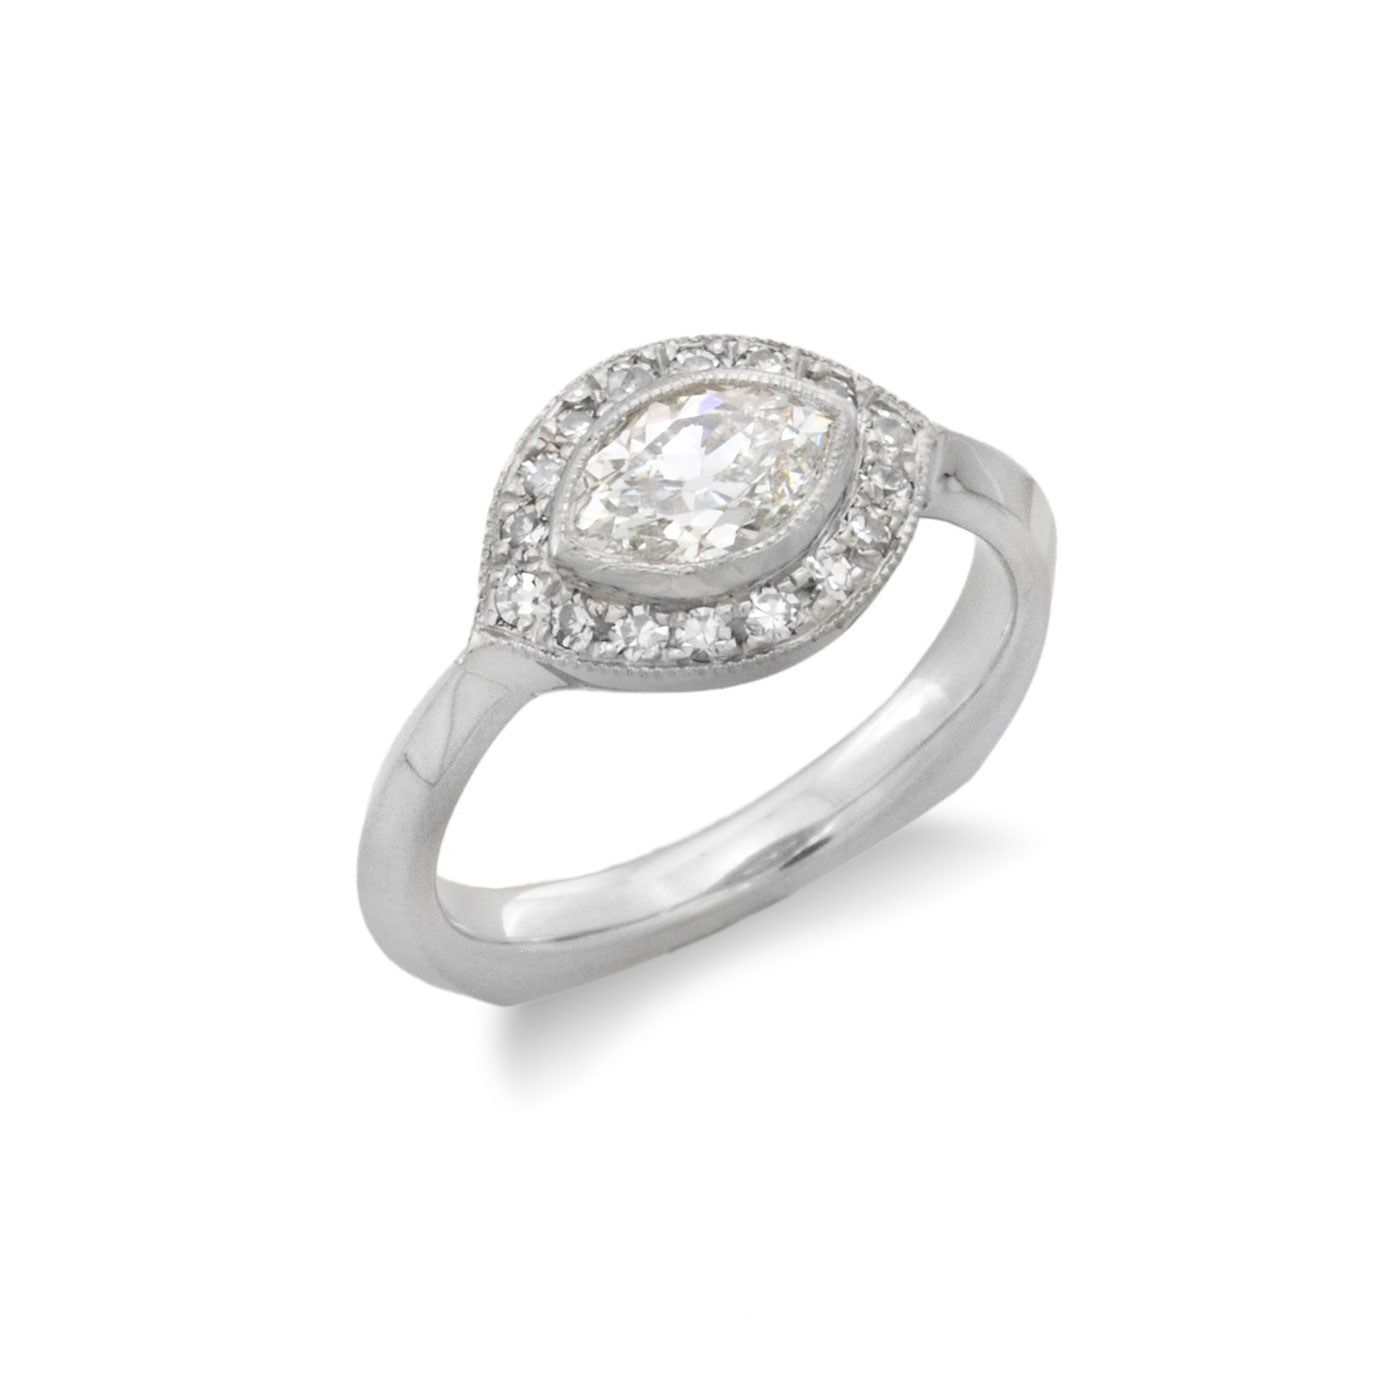 C5424 Sideways Marquise Diamond Halo